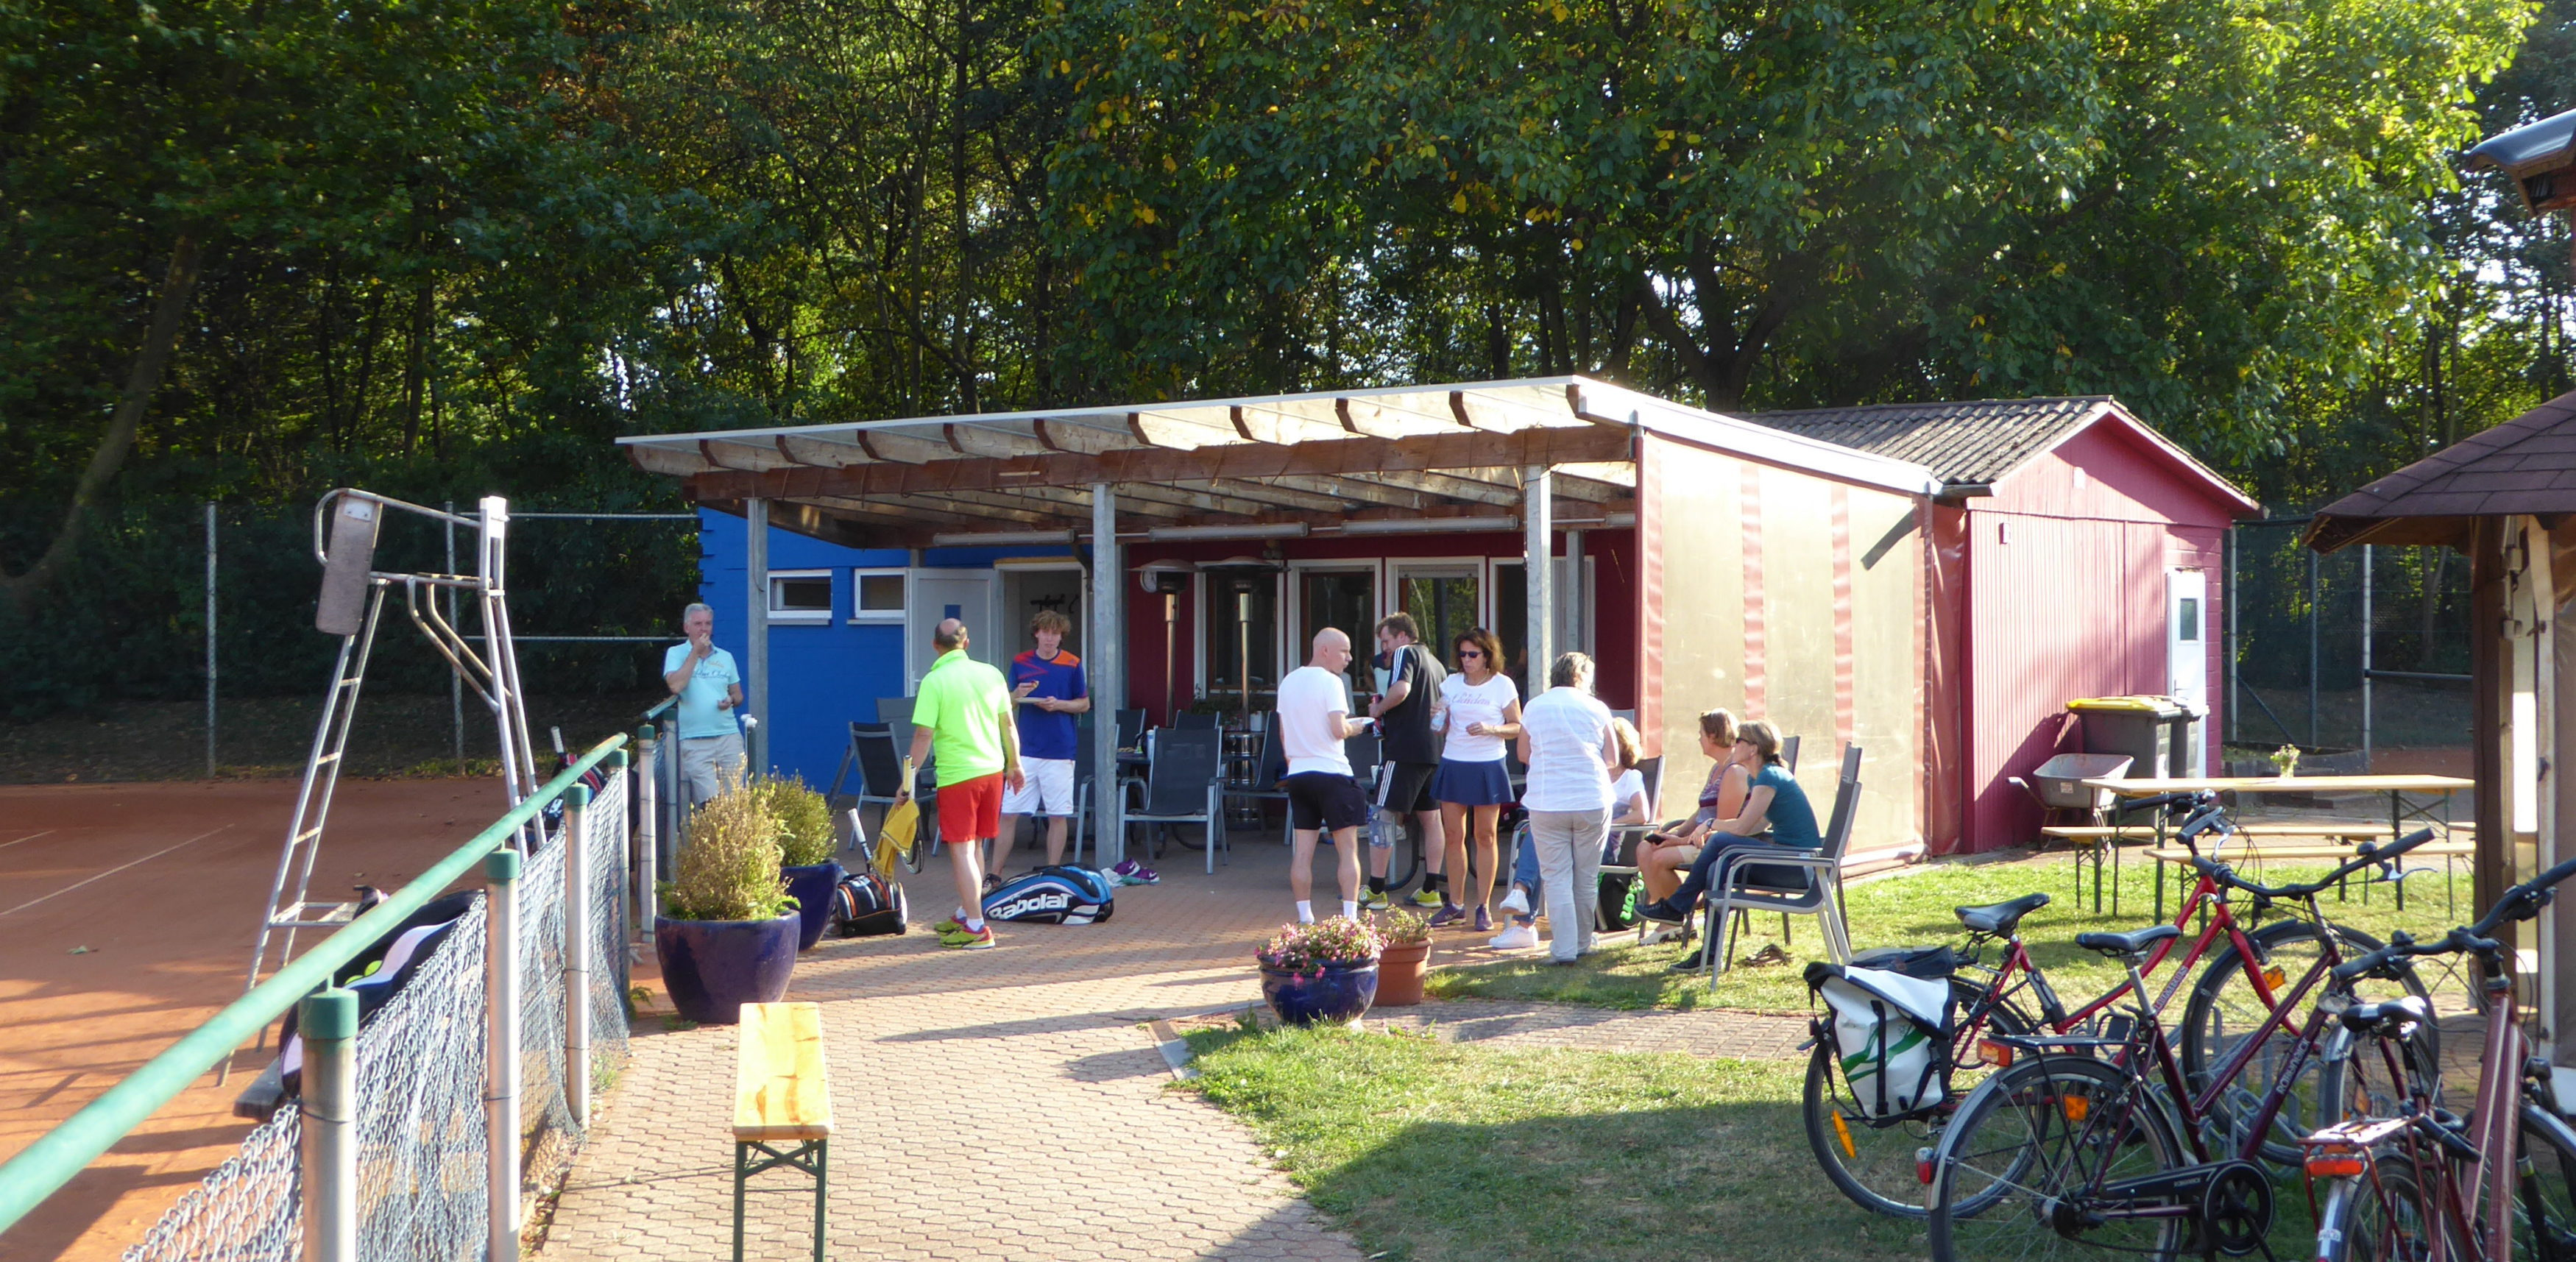 Tennis in Geislar